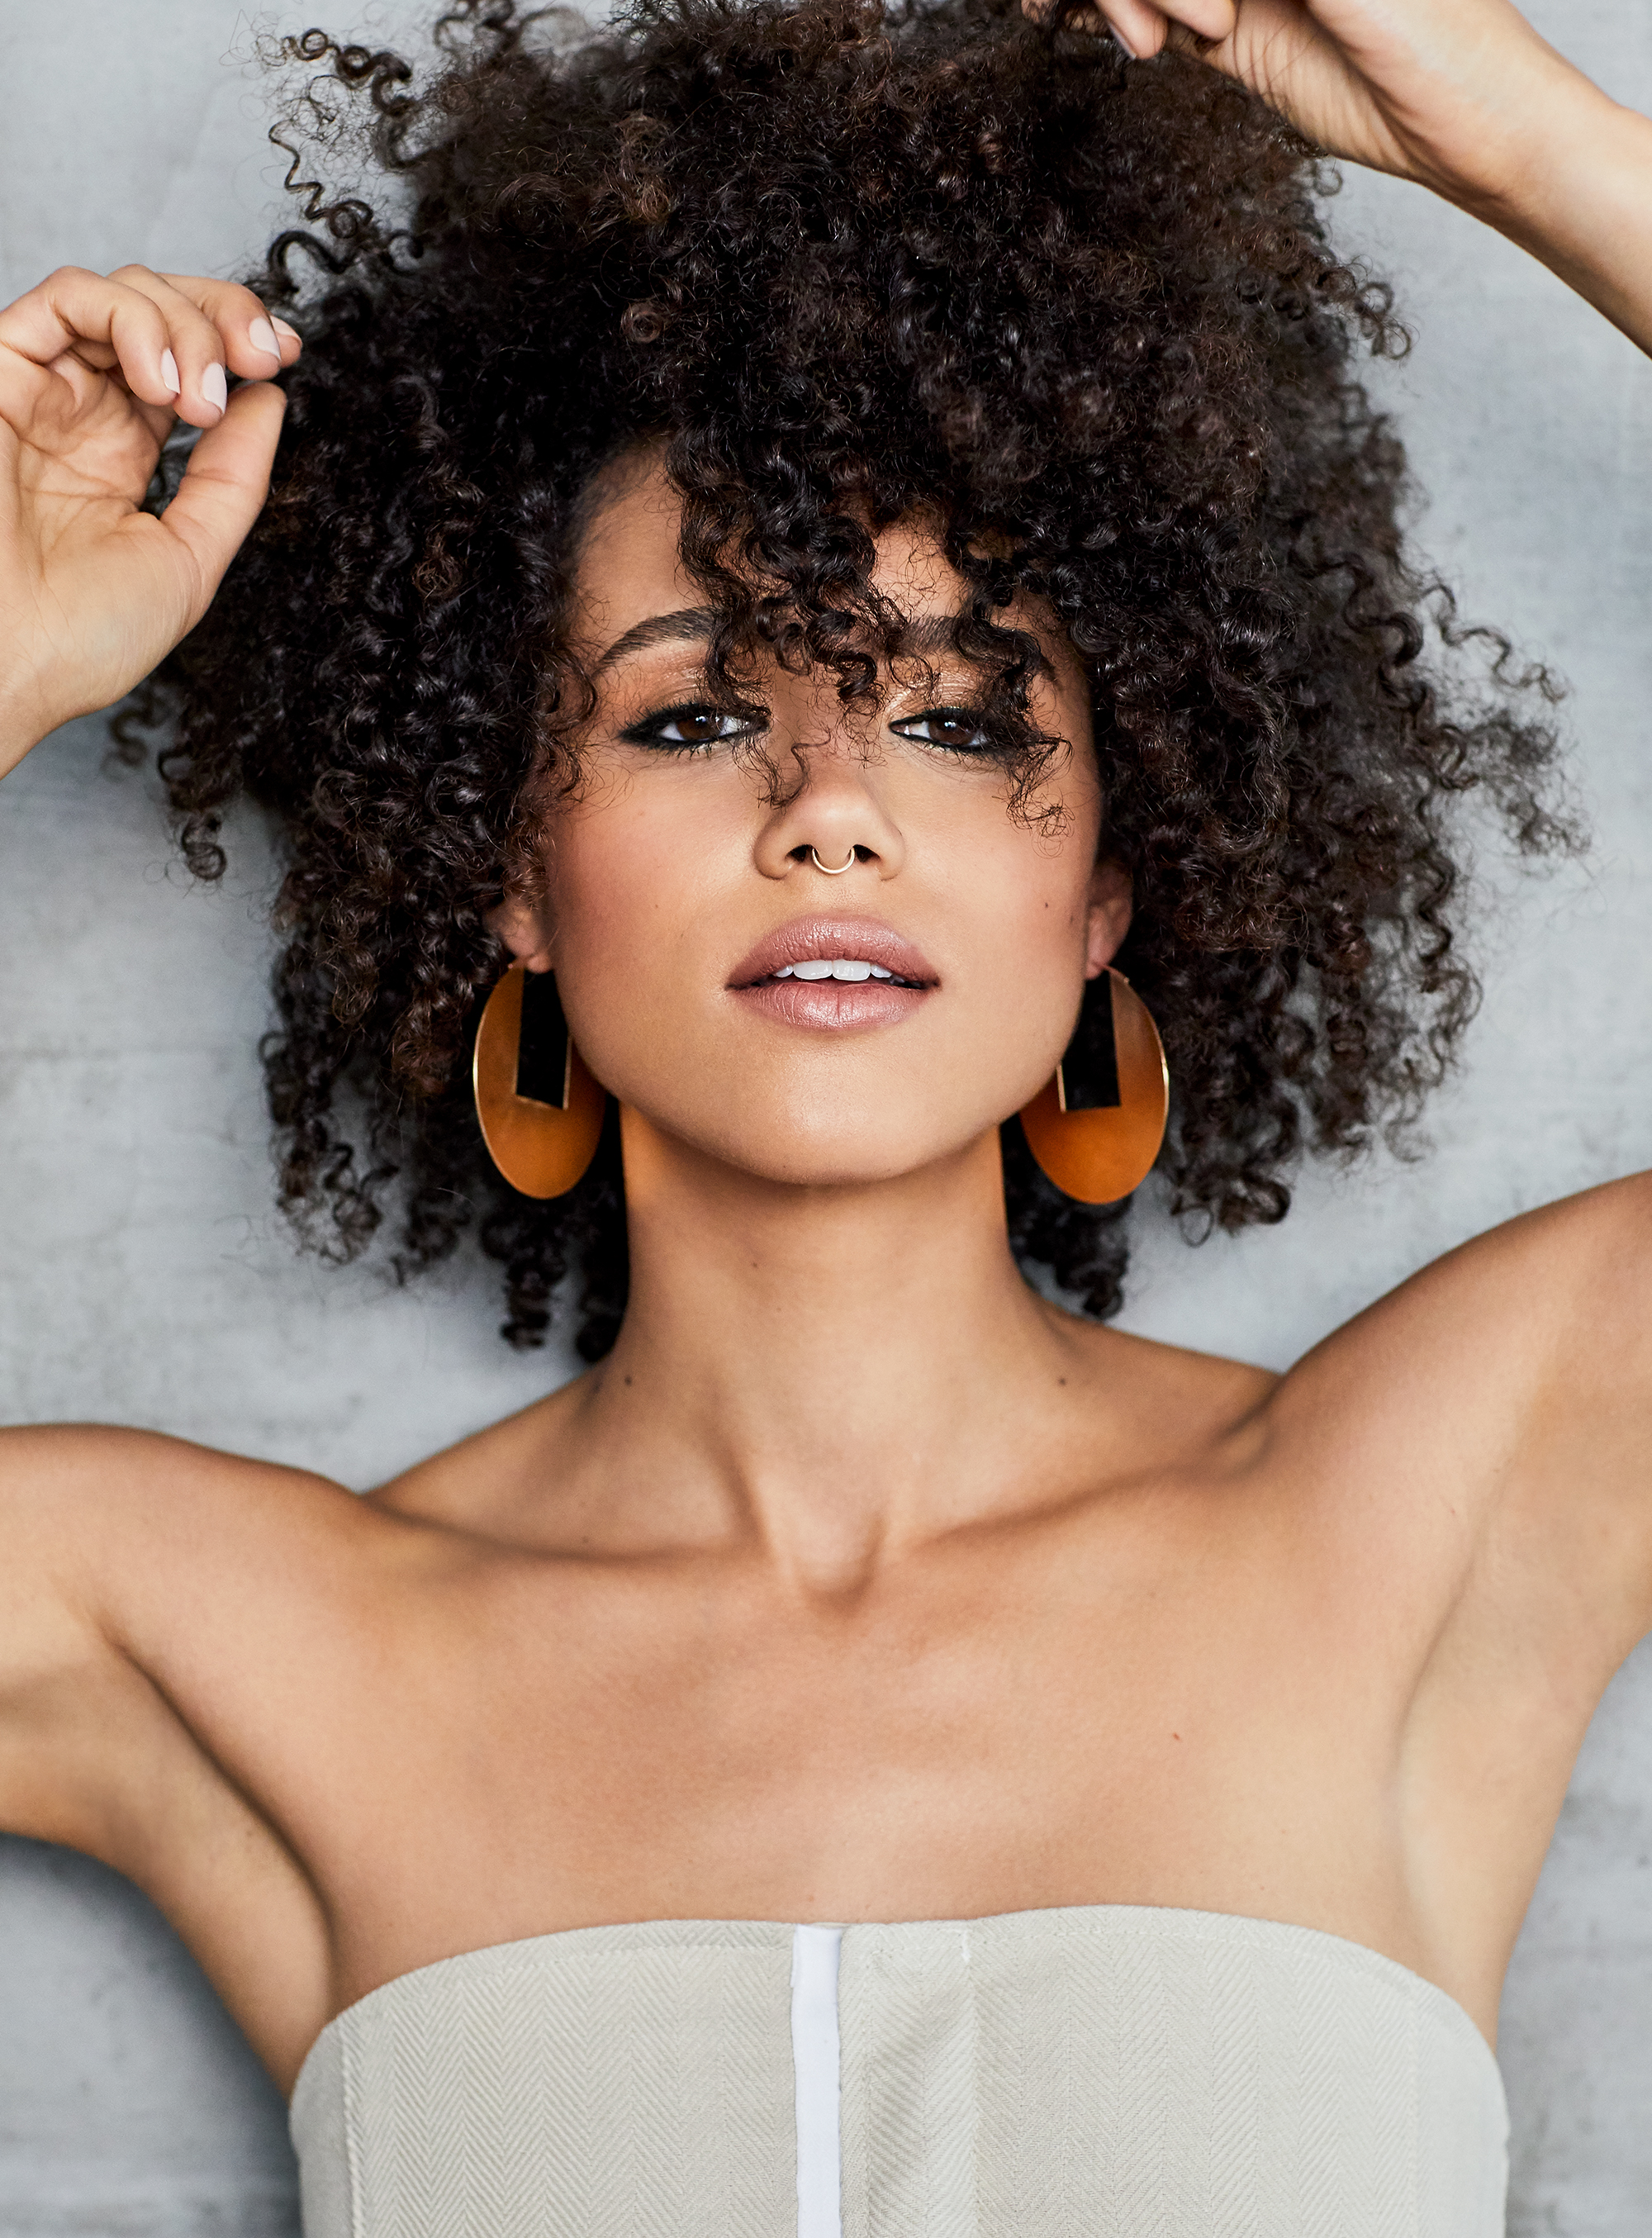 game of thrones star nathalie emmanuel on fame, fear, and her iconic